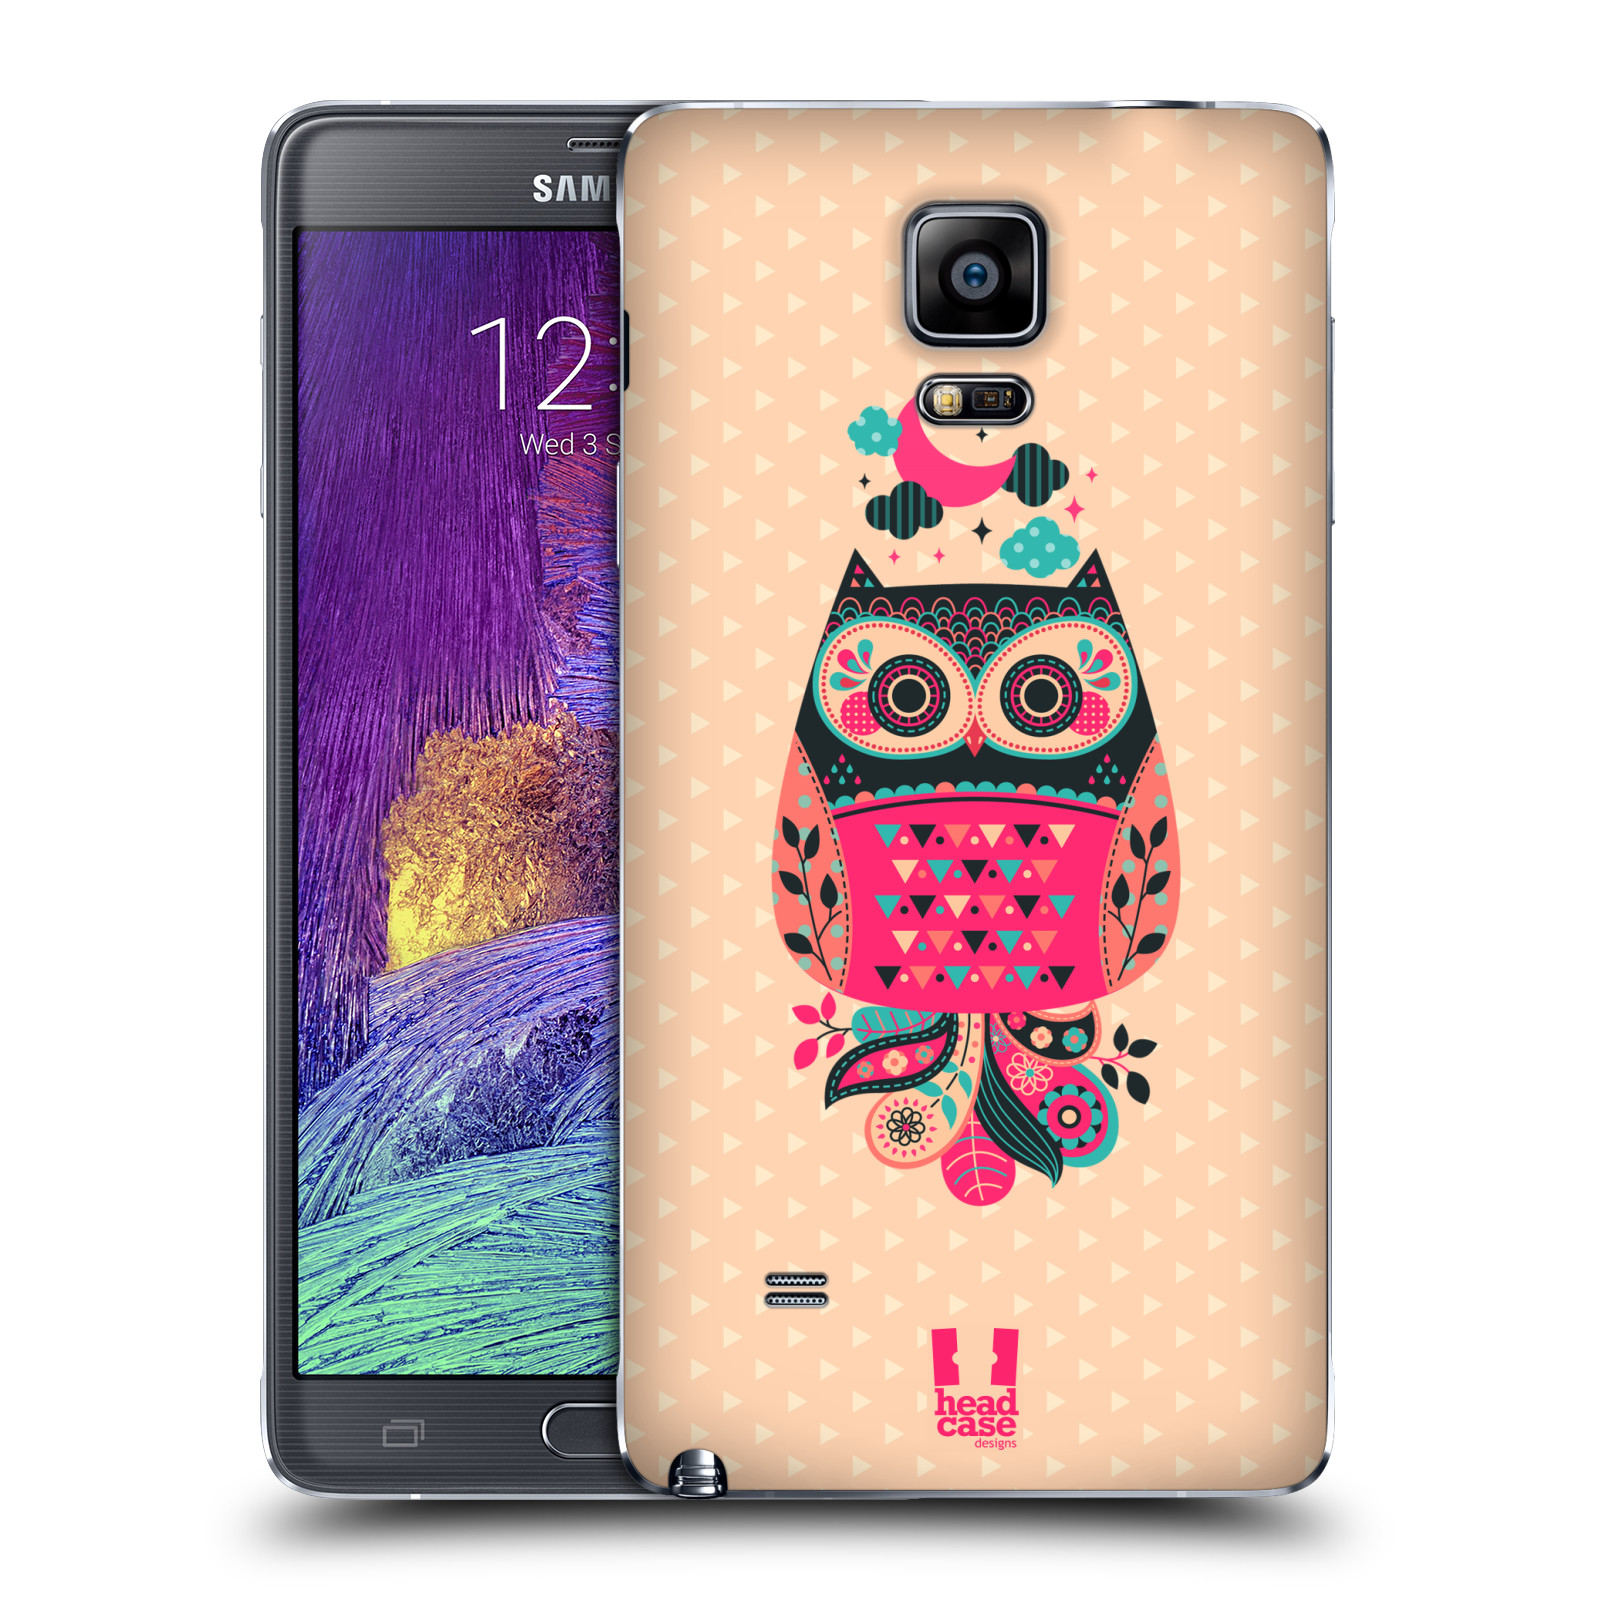 HEAD CASE DESIGNS NIGHTFALL OWLS REPLACEMENT BATTERY COVER FOR SAMSUNG PHONES 1